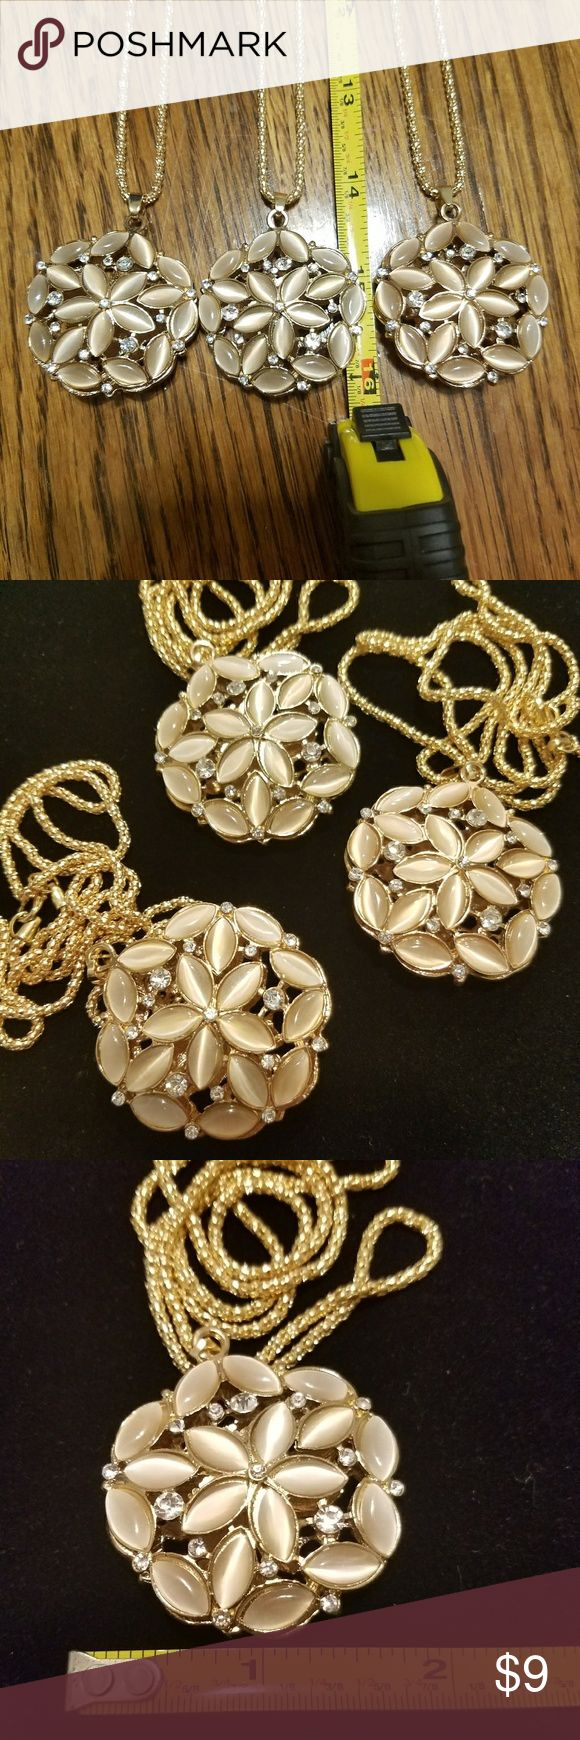 """Necklace With 3D Flower Pendant. Necklace and pendant three-dimensional Round Flowers. Composition is of Alloy Metals, Faux Opal unique beige color. White Rhinestones. Gemstones. Goldtone. NWOT. Chain Length: 14""""  Pendant Diameter: 2""""  Package included: 1 Necklace 1 Pendant. Jewelry Necklaces"""